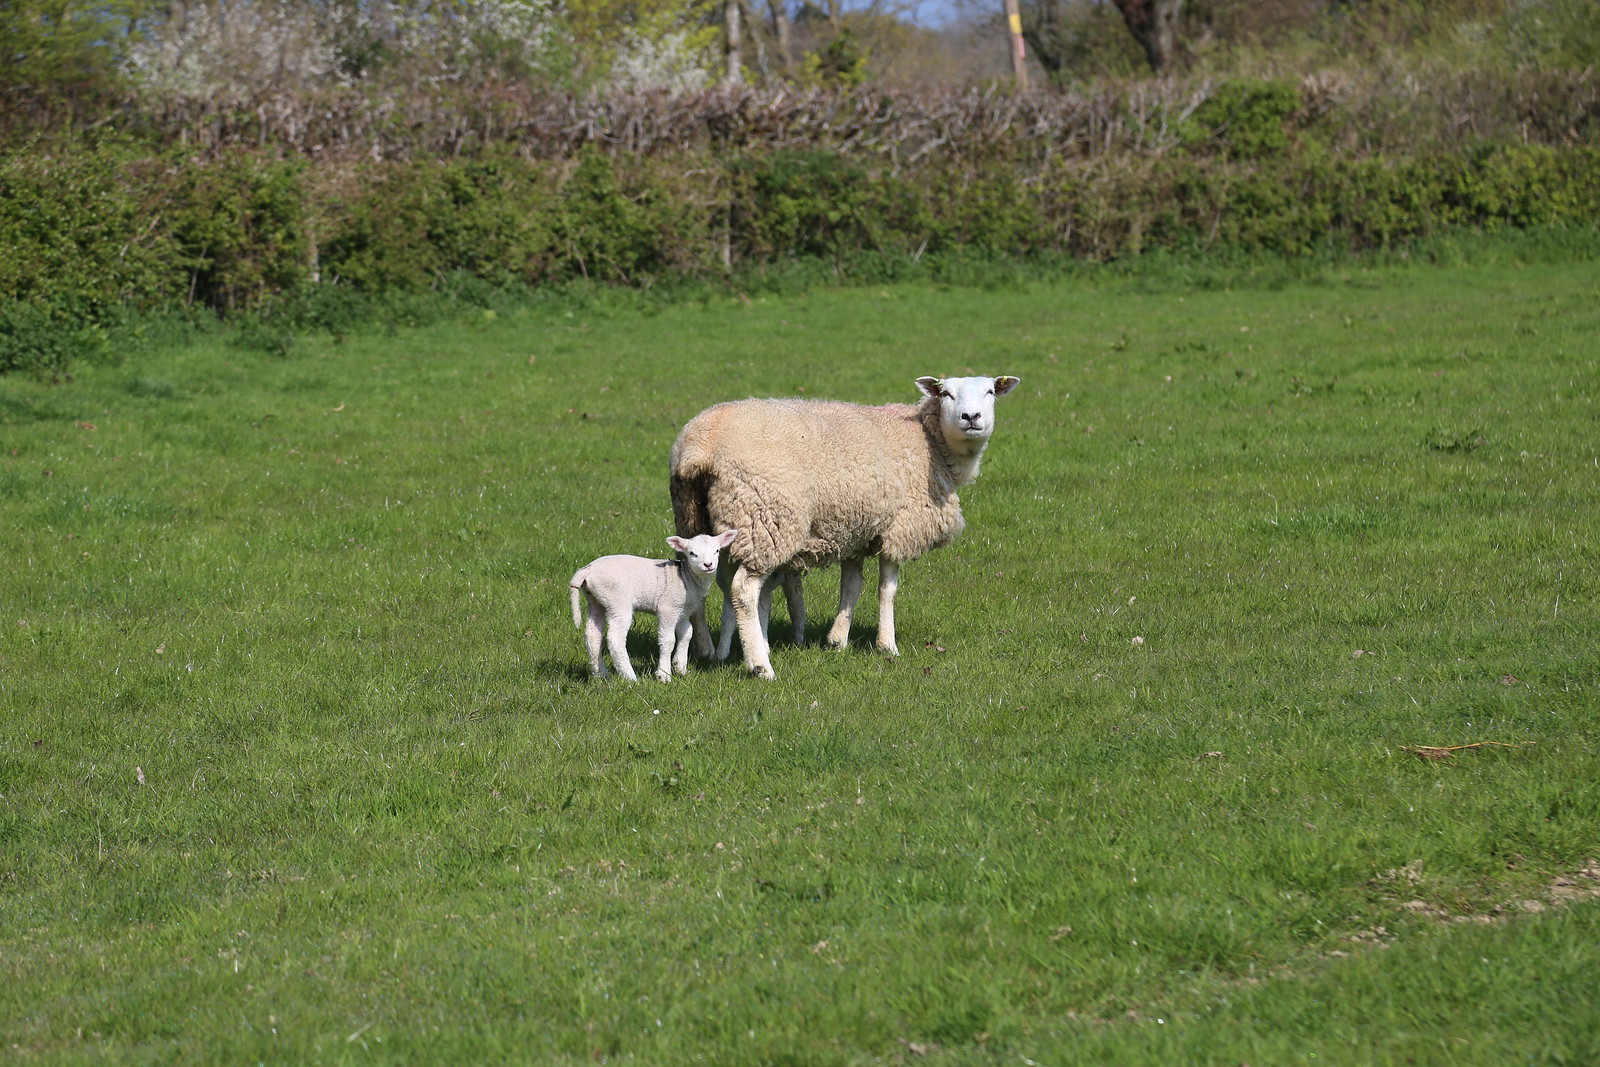 Ewe and Lamb distrustful